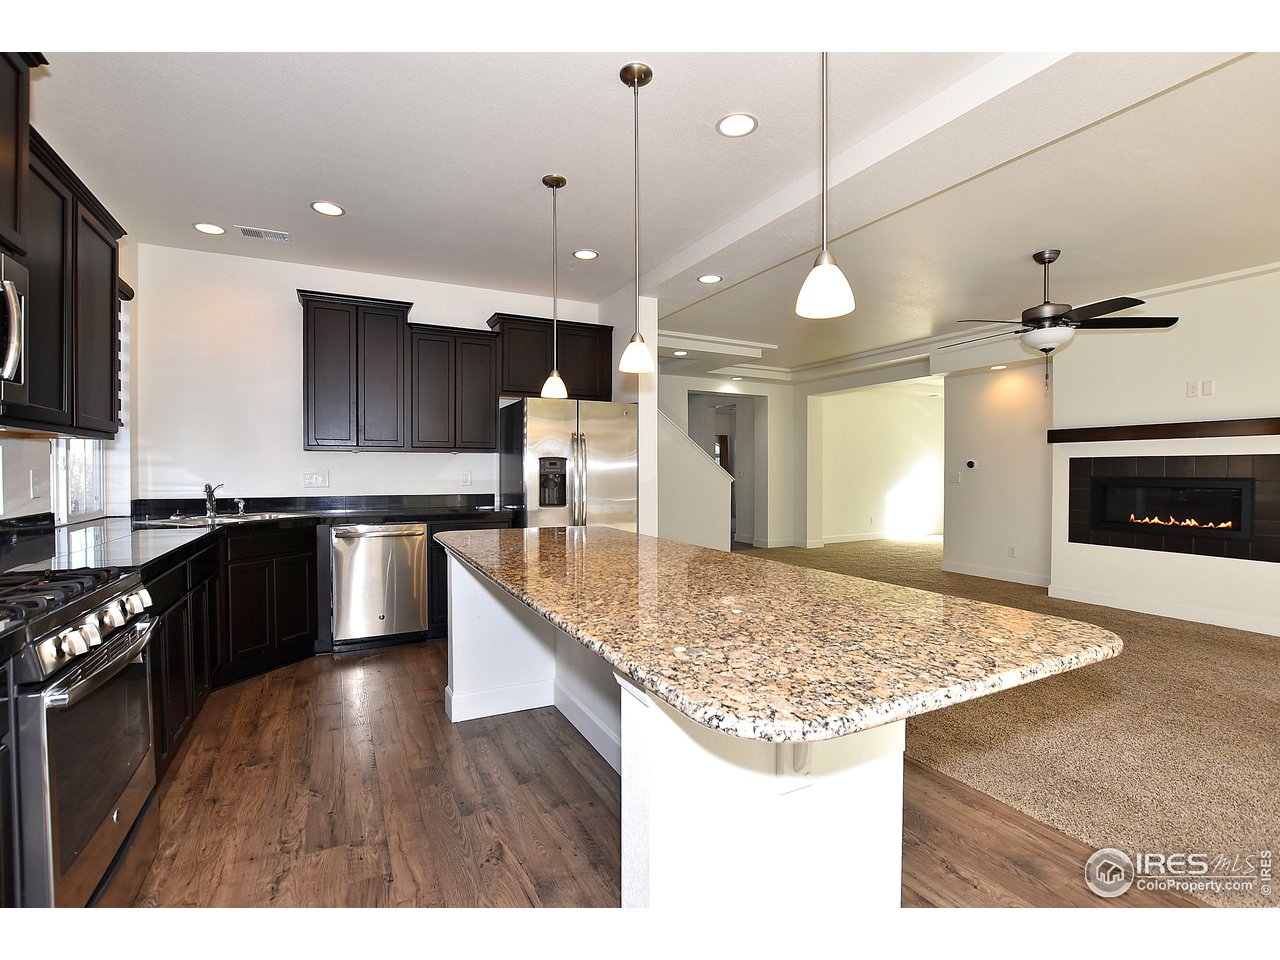 Spacious kitchen will allow entertaining for hours